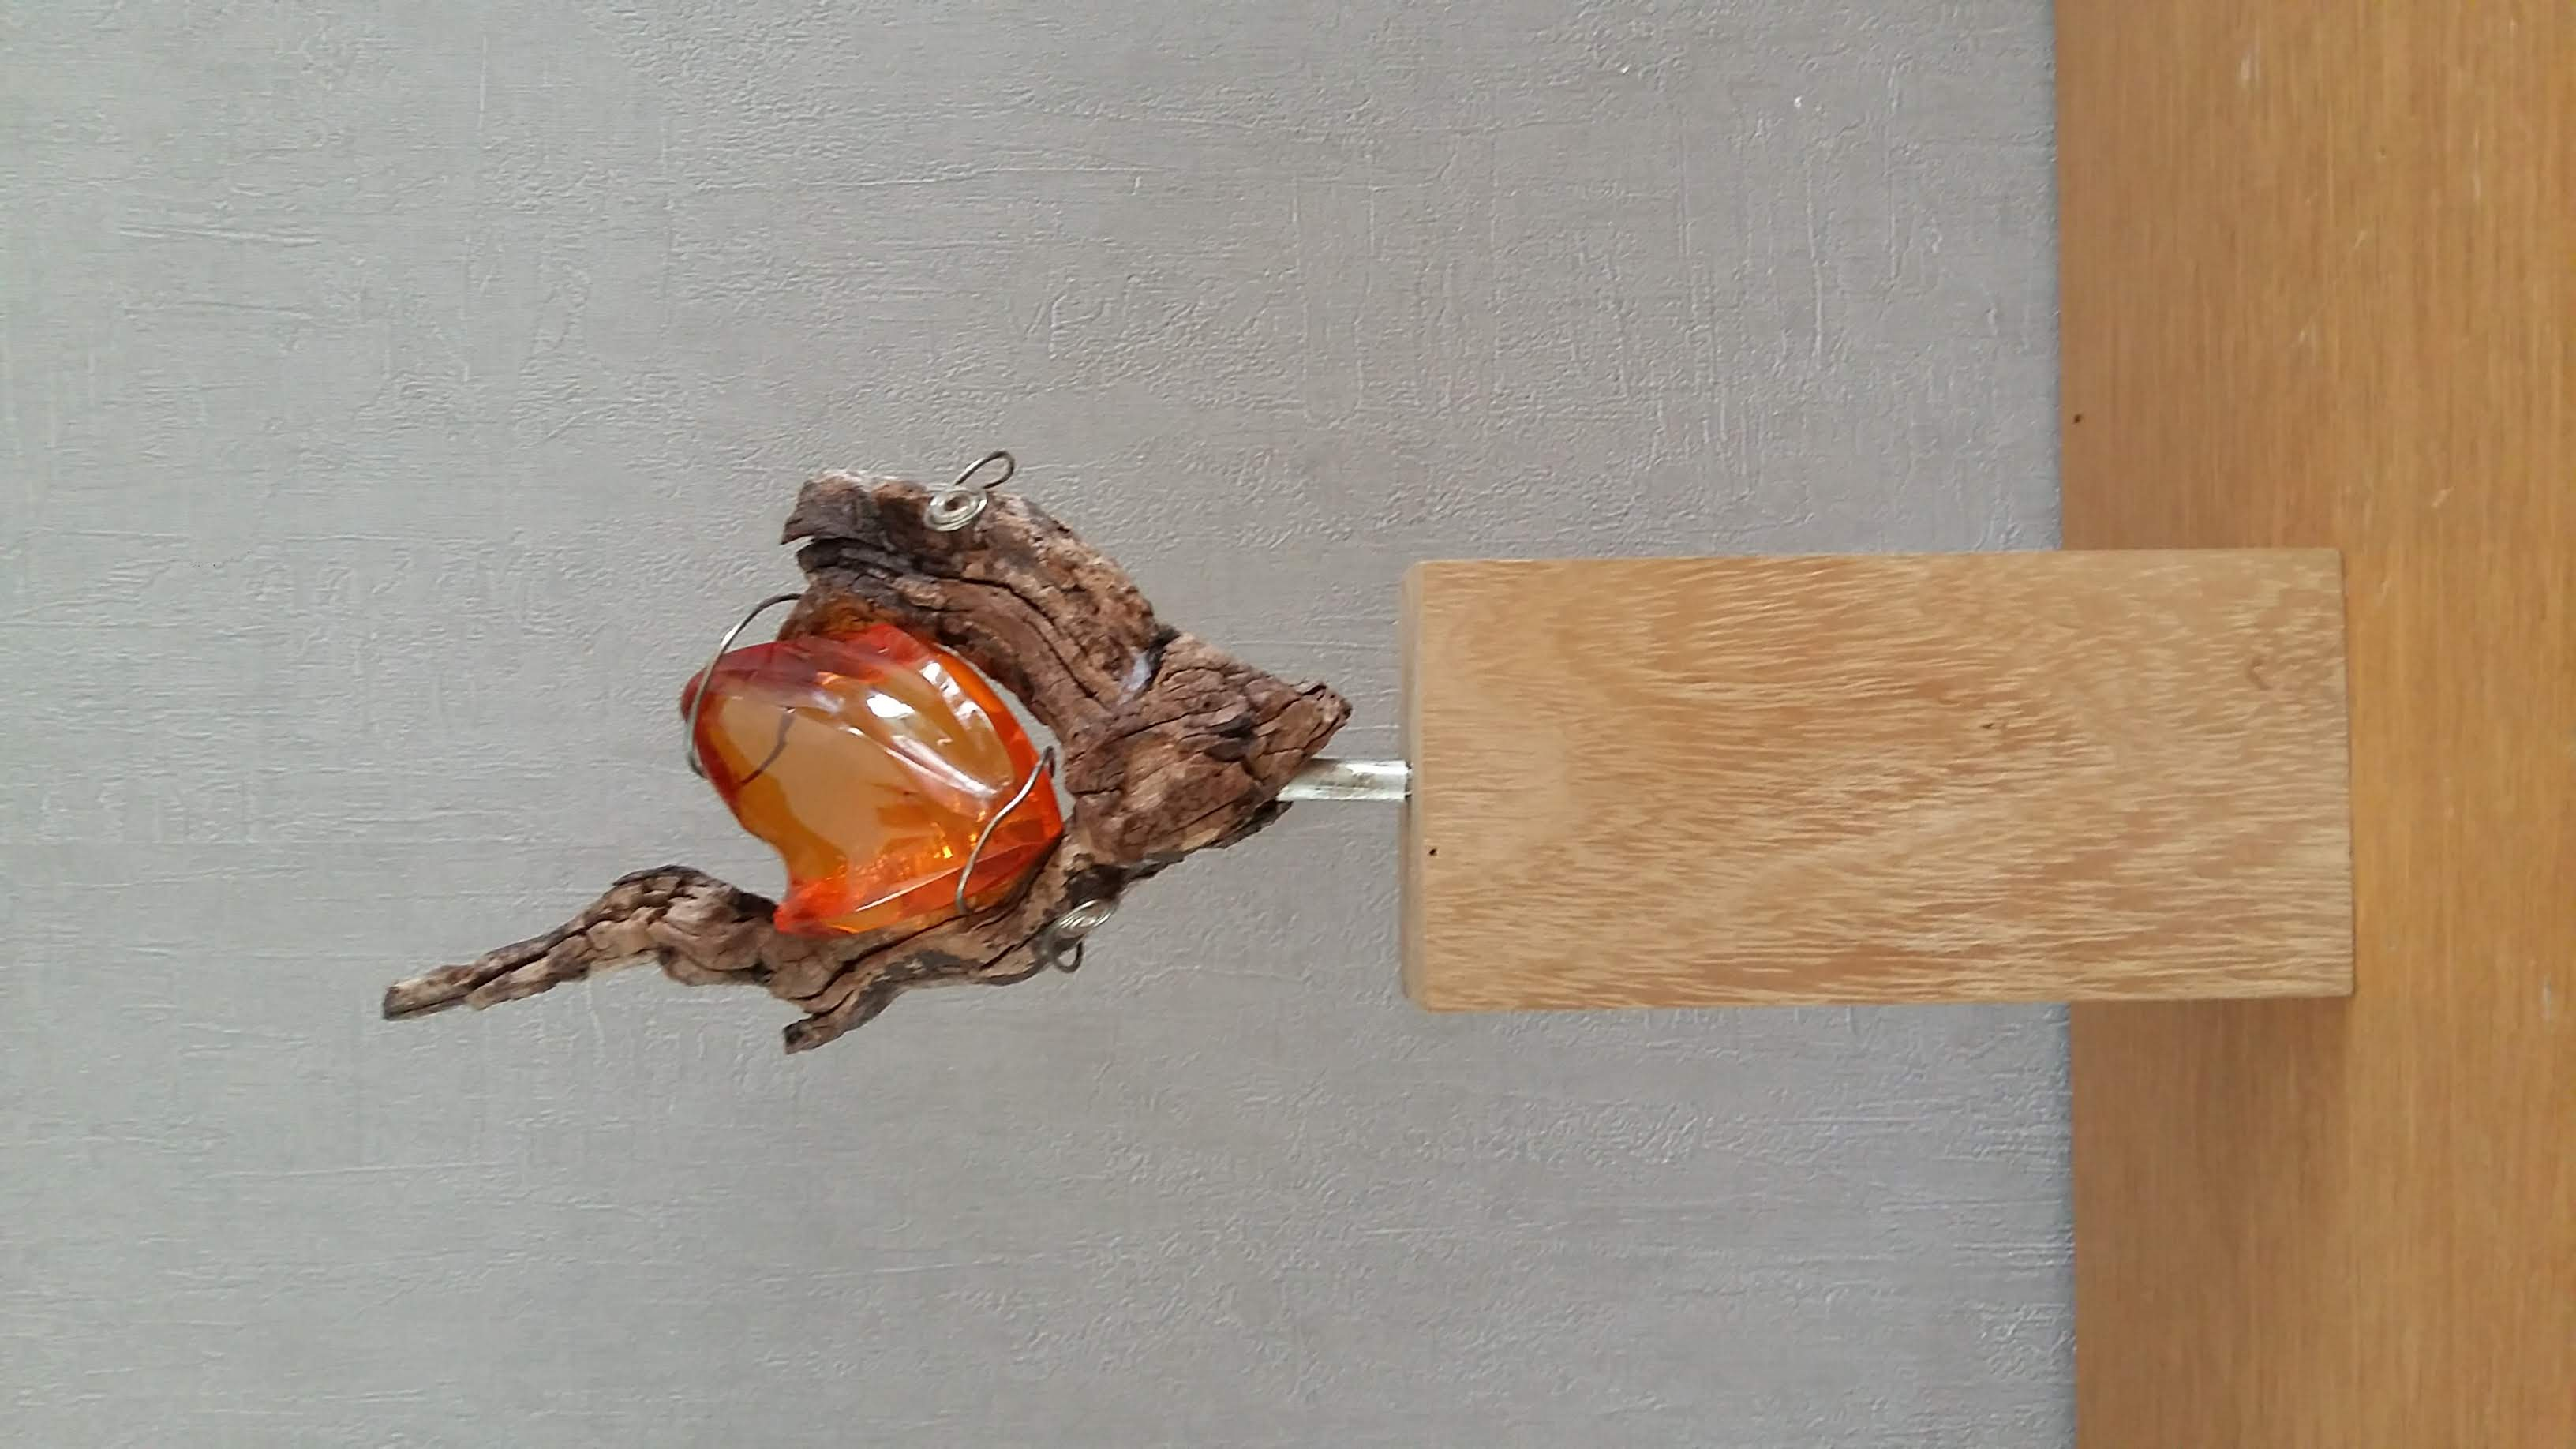 Statue-Object, Amber, zilver hout